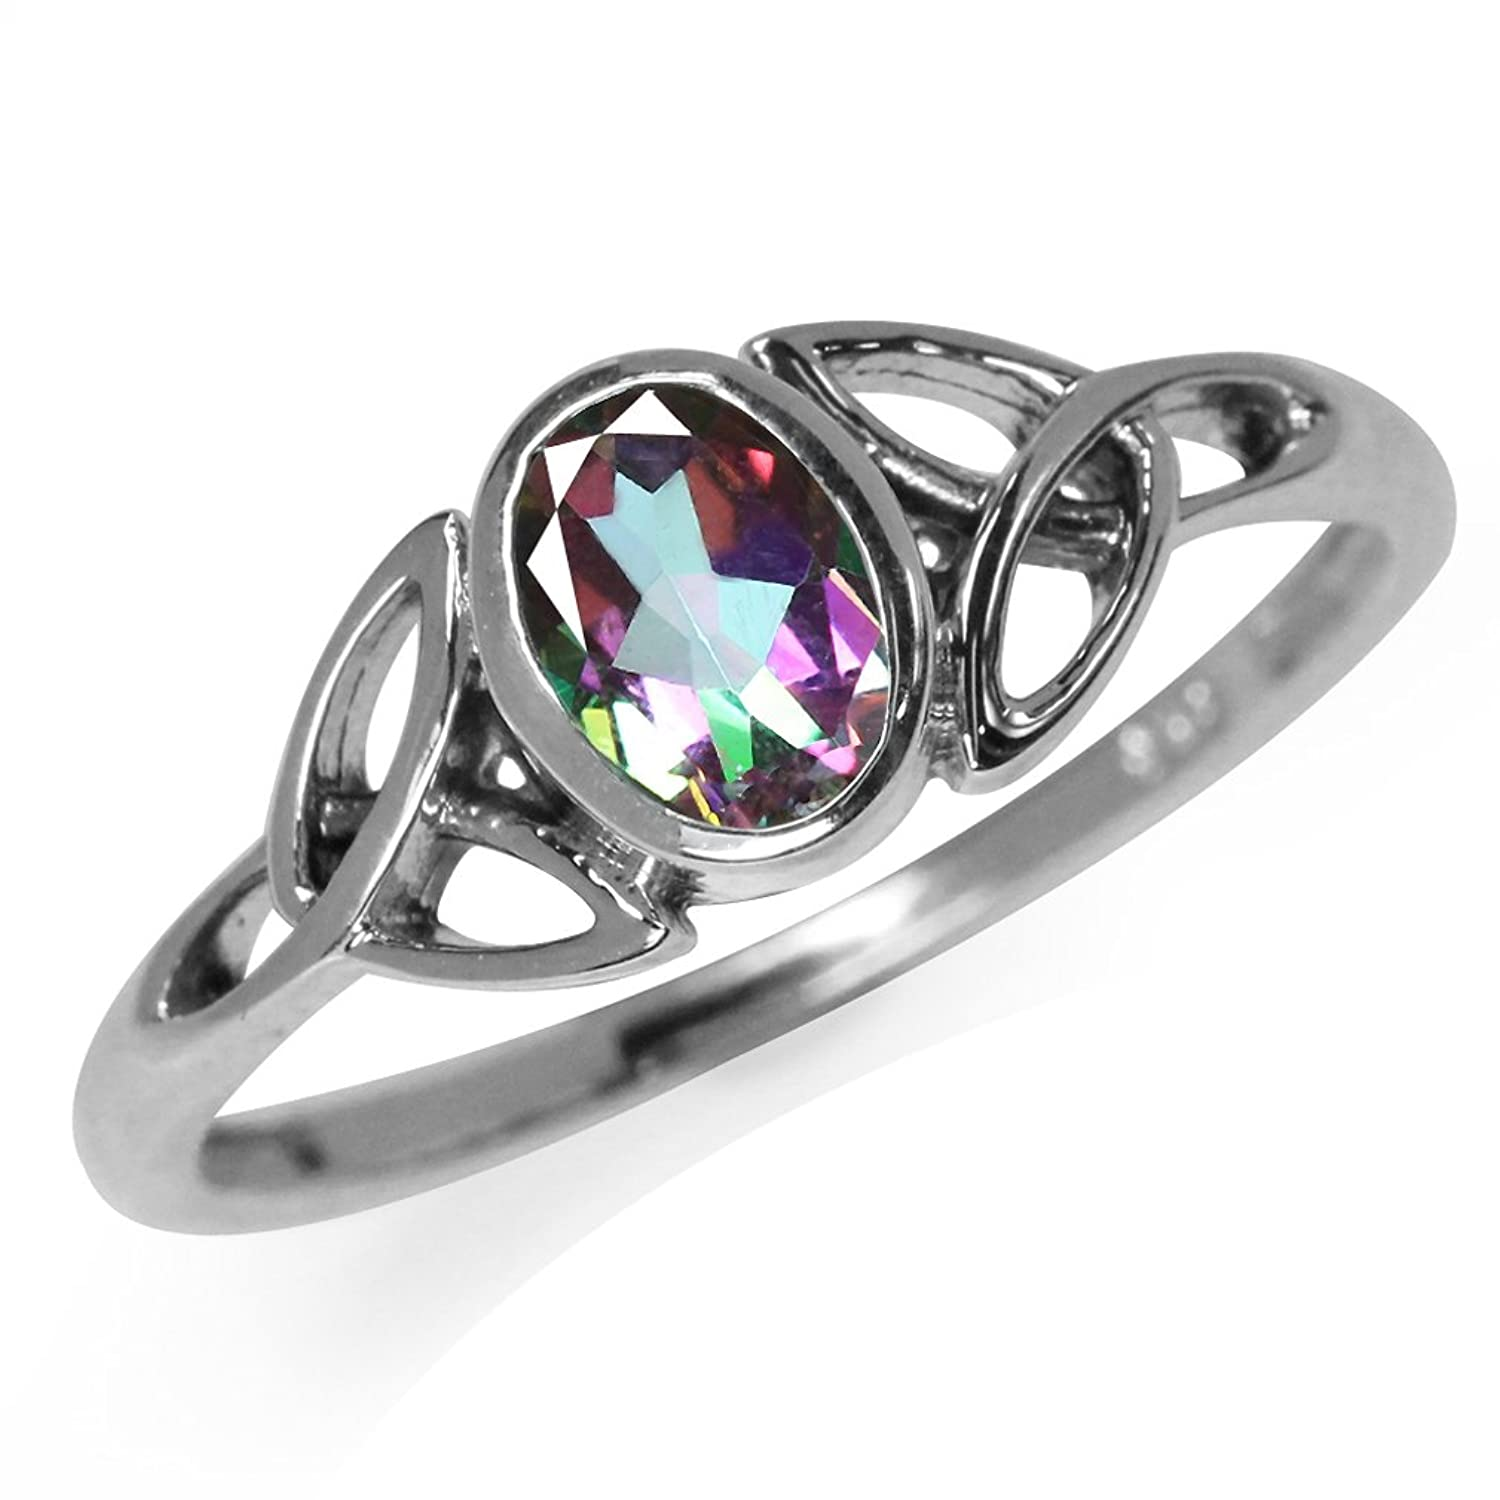 product in rings mystic topaz carat silver crafted noble ring sterling solid image products rainbow fire